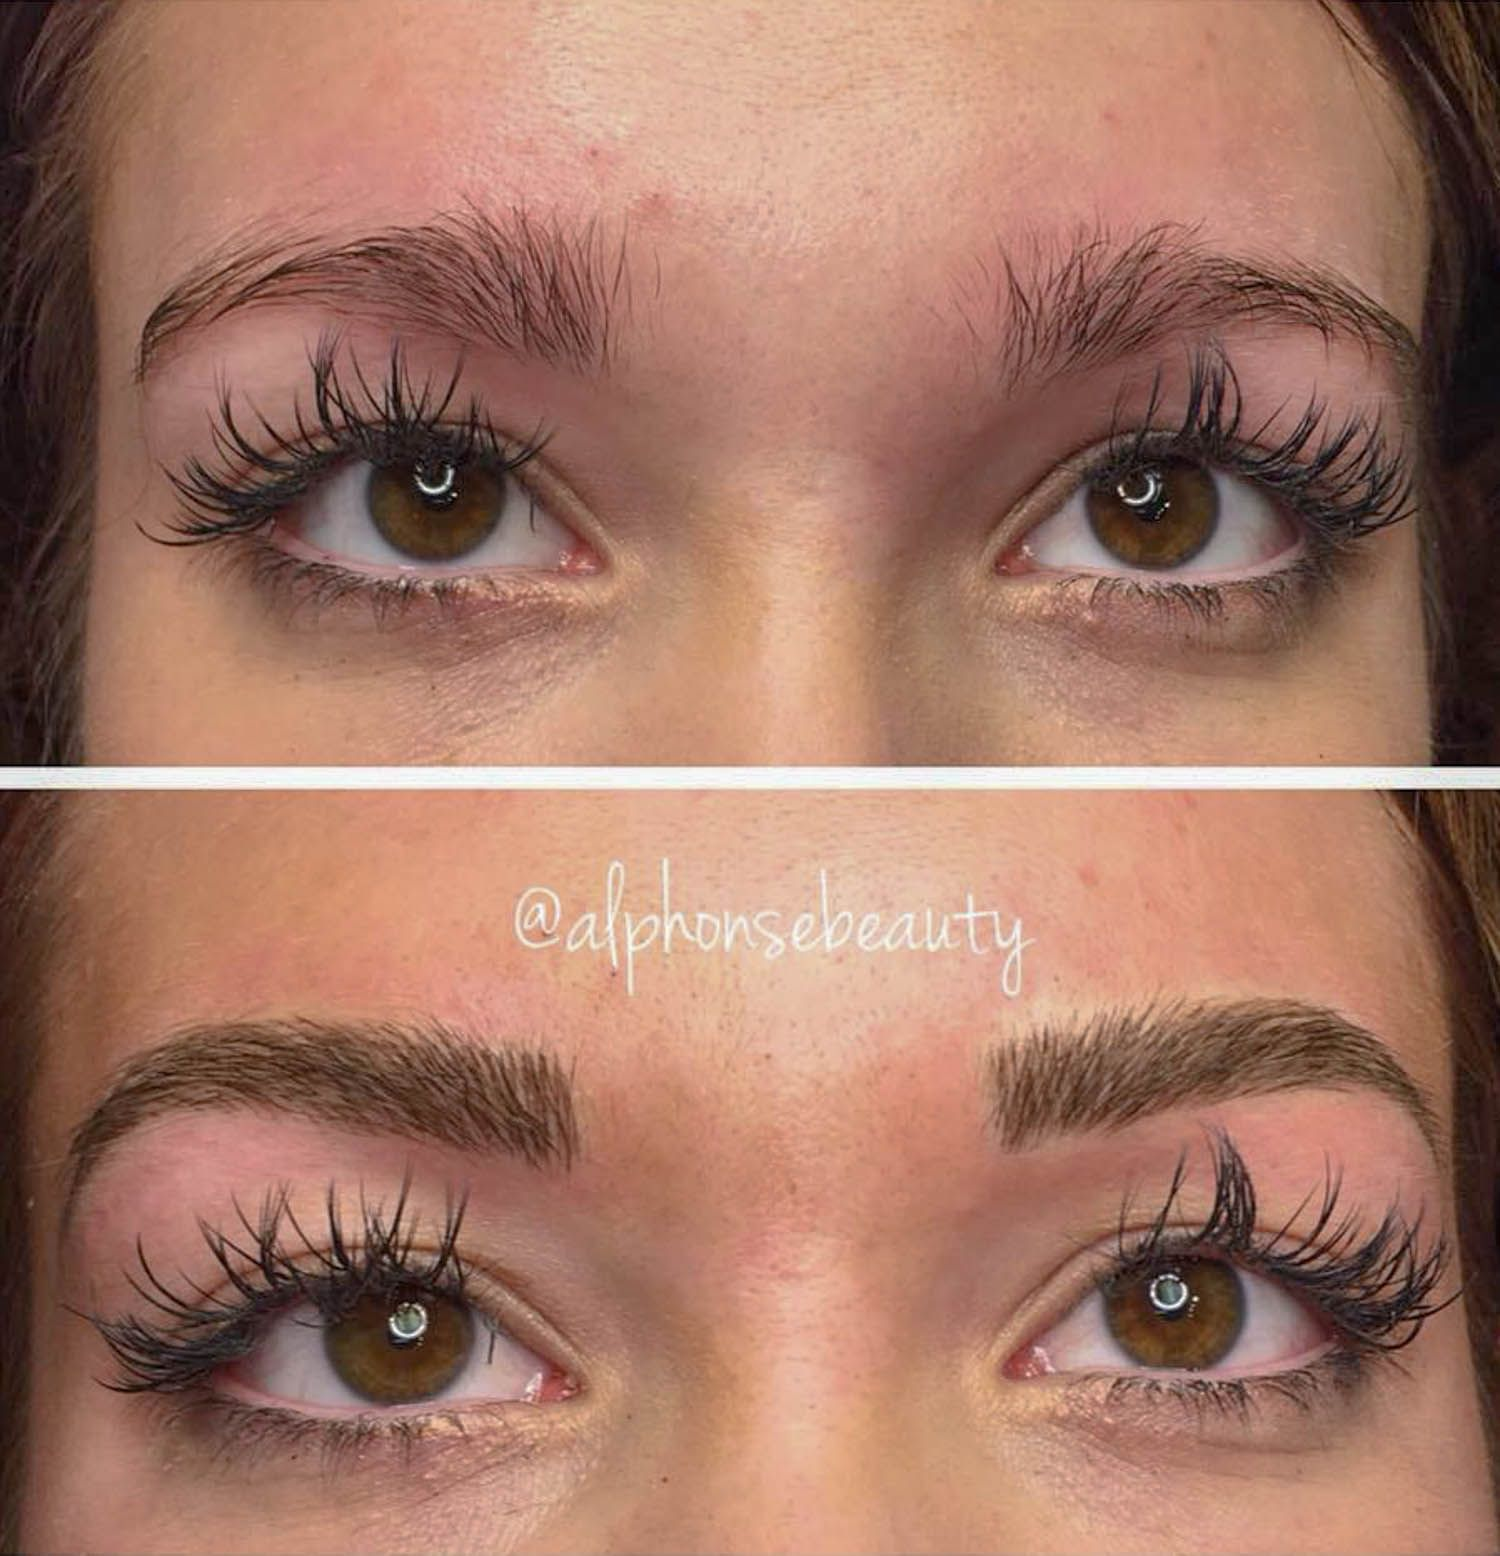 Permanent Eyebrow Microblading procedure conducted at Alphonse Beauty Microblading Studio in Michigan